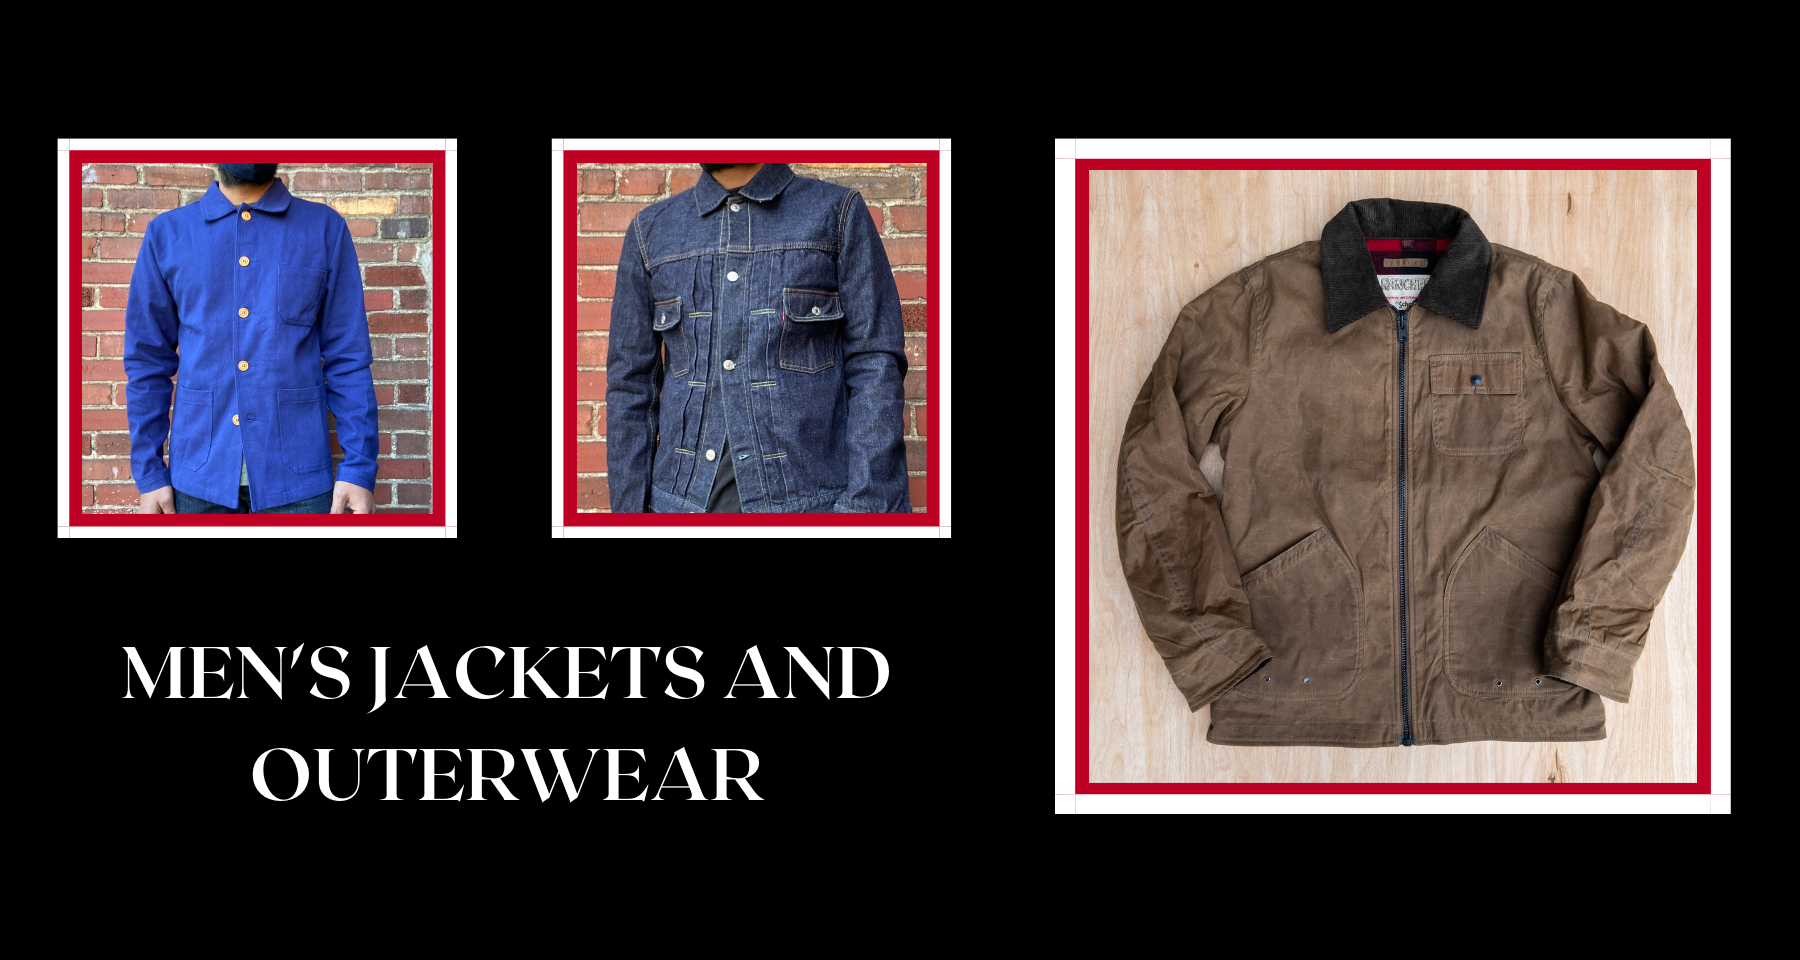 MEN'S JACKETS AND OUTERWEAR